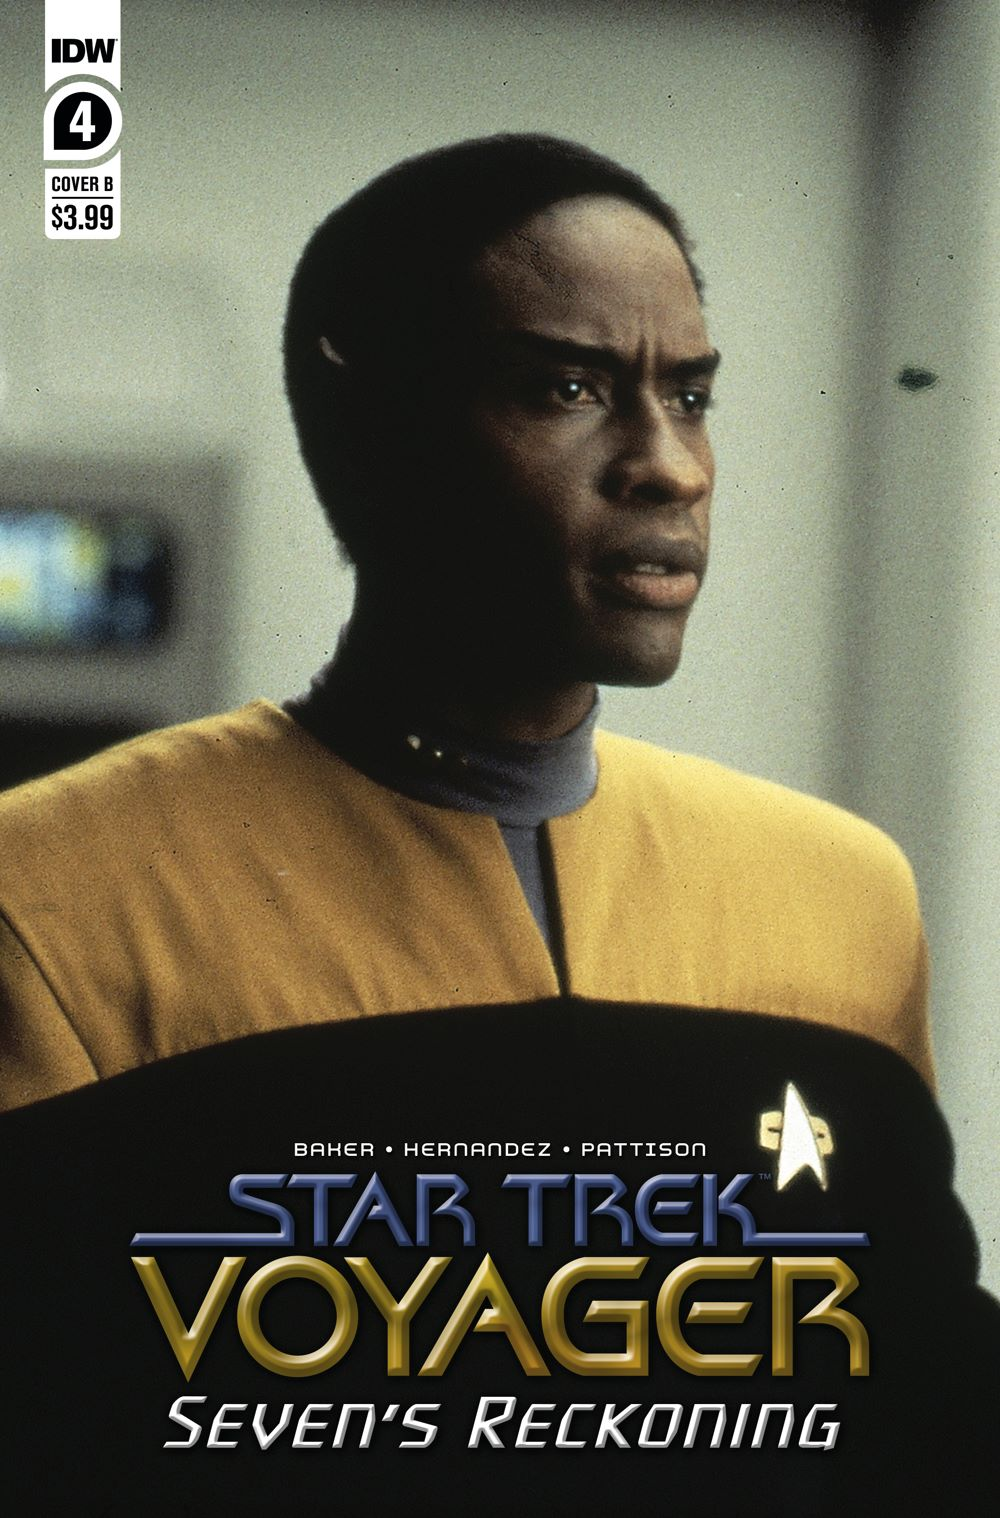 ST_Voyager_SR04-coverB ComicList Previews: STAR TREK VOYAGER SEVEN'S RECKONING #4 (OF 4)